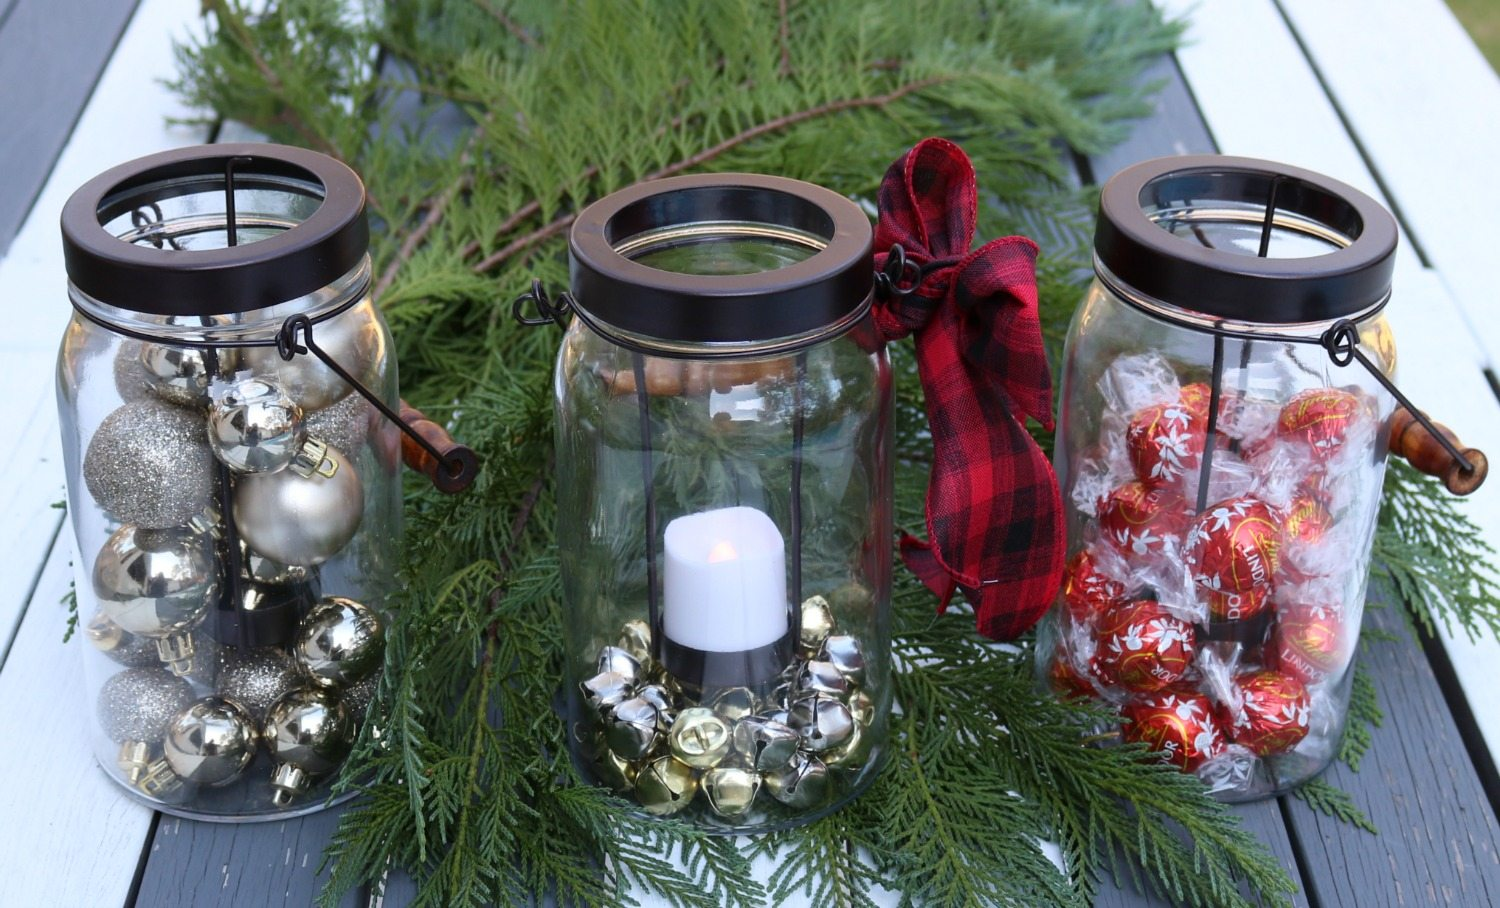 Mason jar style candle holders are perfect gifts